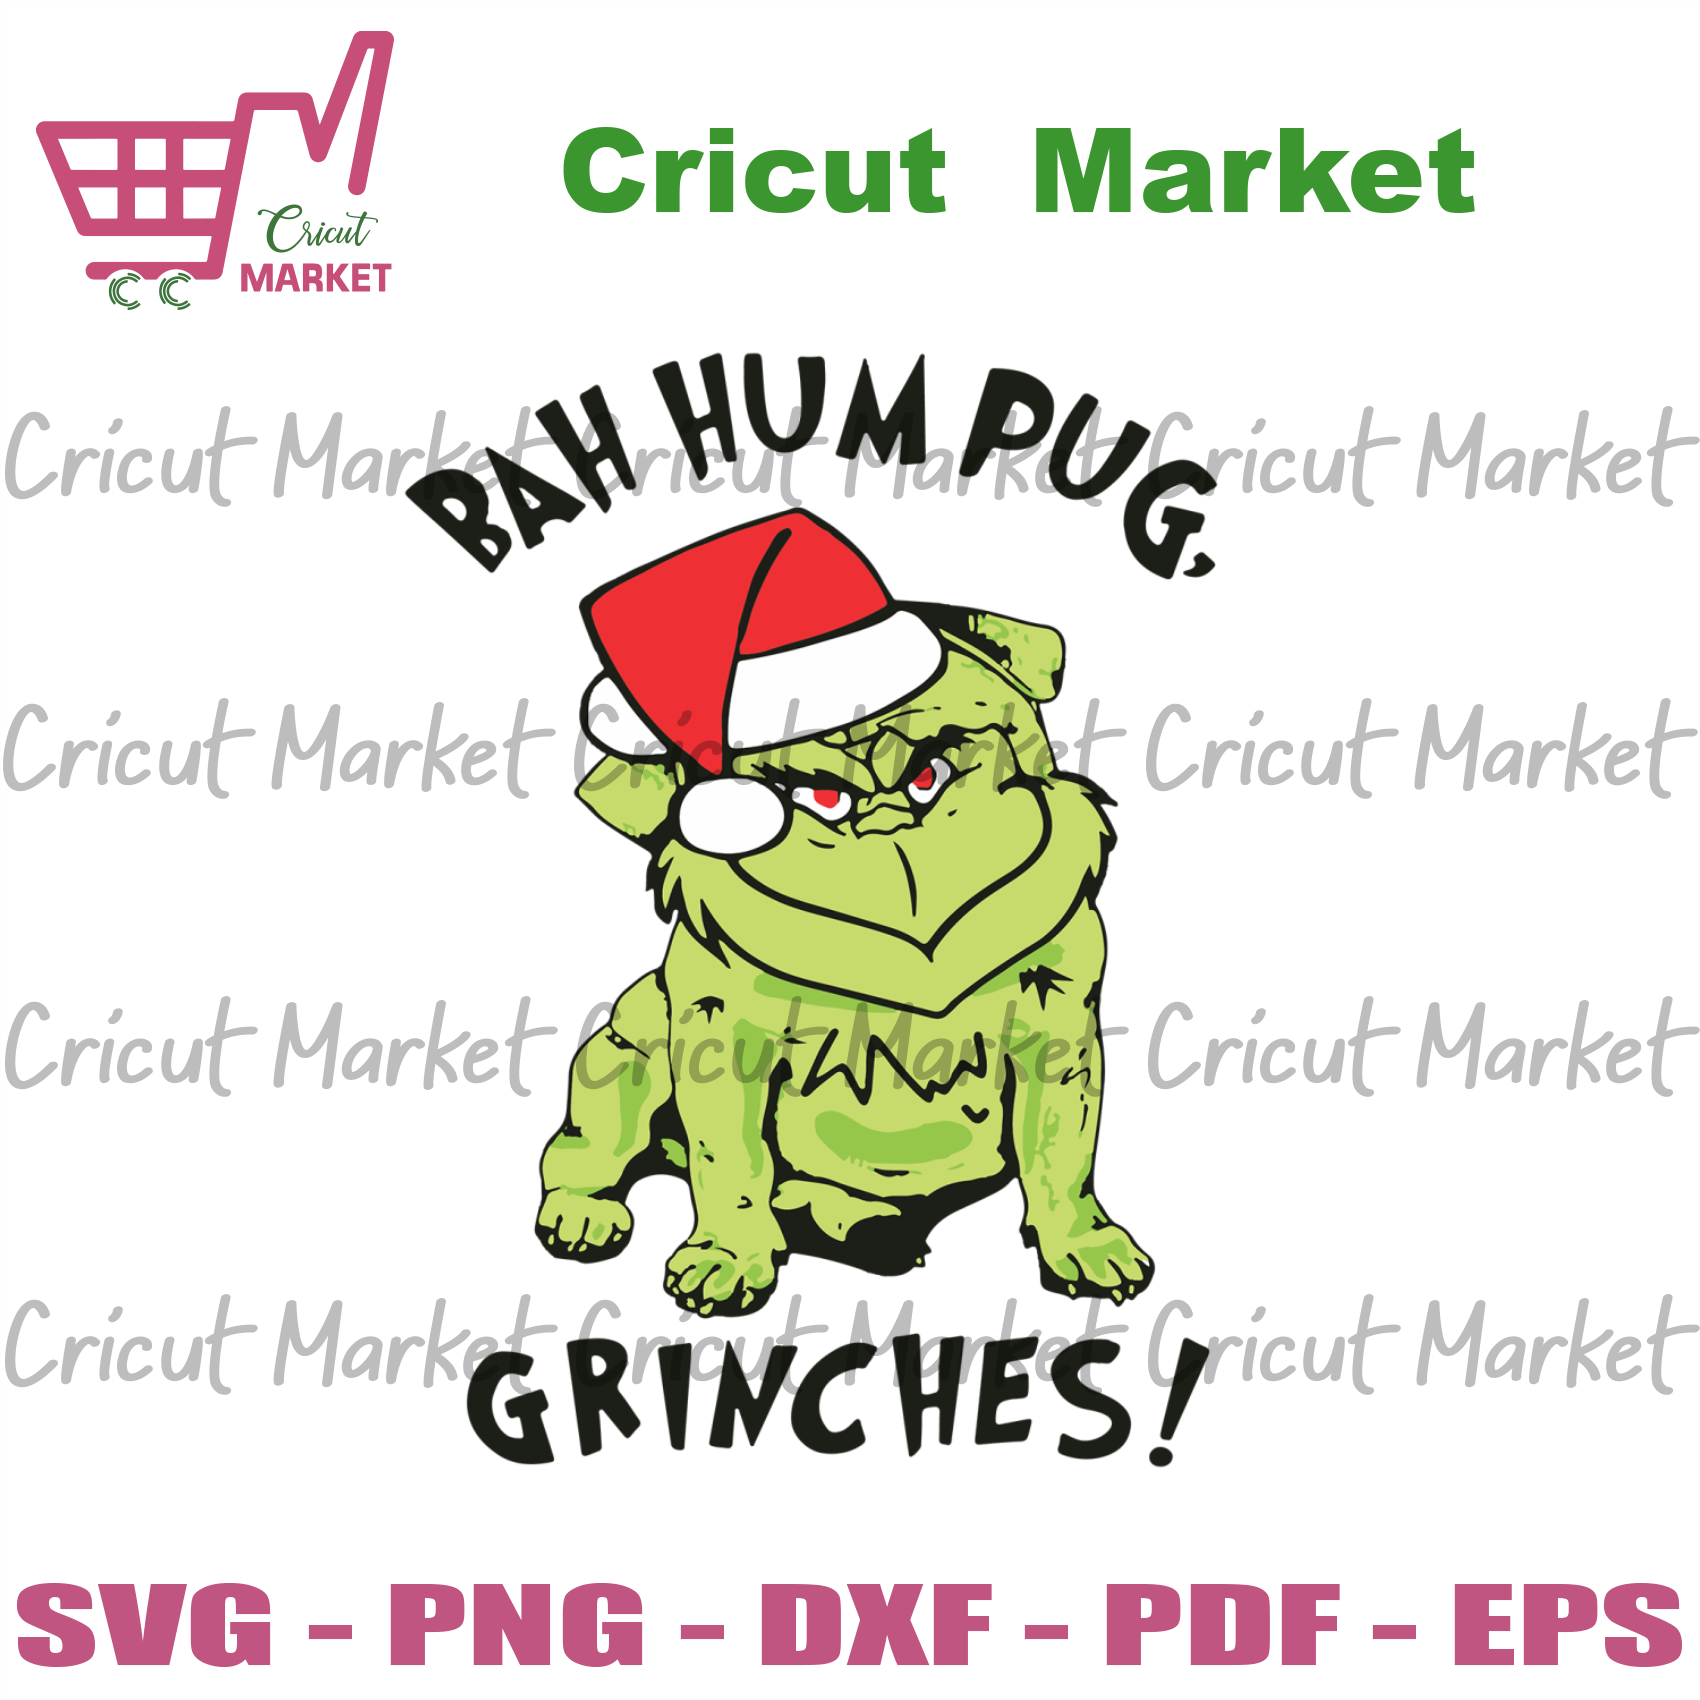 Bah Hum Pug Grinches, Christmas Svg, Grinch Svg, Pug Svg, Pug Dog Svg, Christmas Grinch Svg, Grinch Lovers, Christmas Gifts, Merry Christmas, Christmas Holiday, Christmas Party, Funny Christm